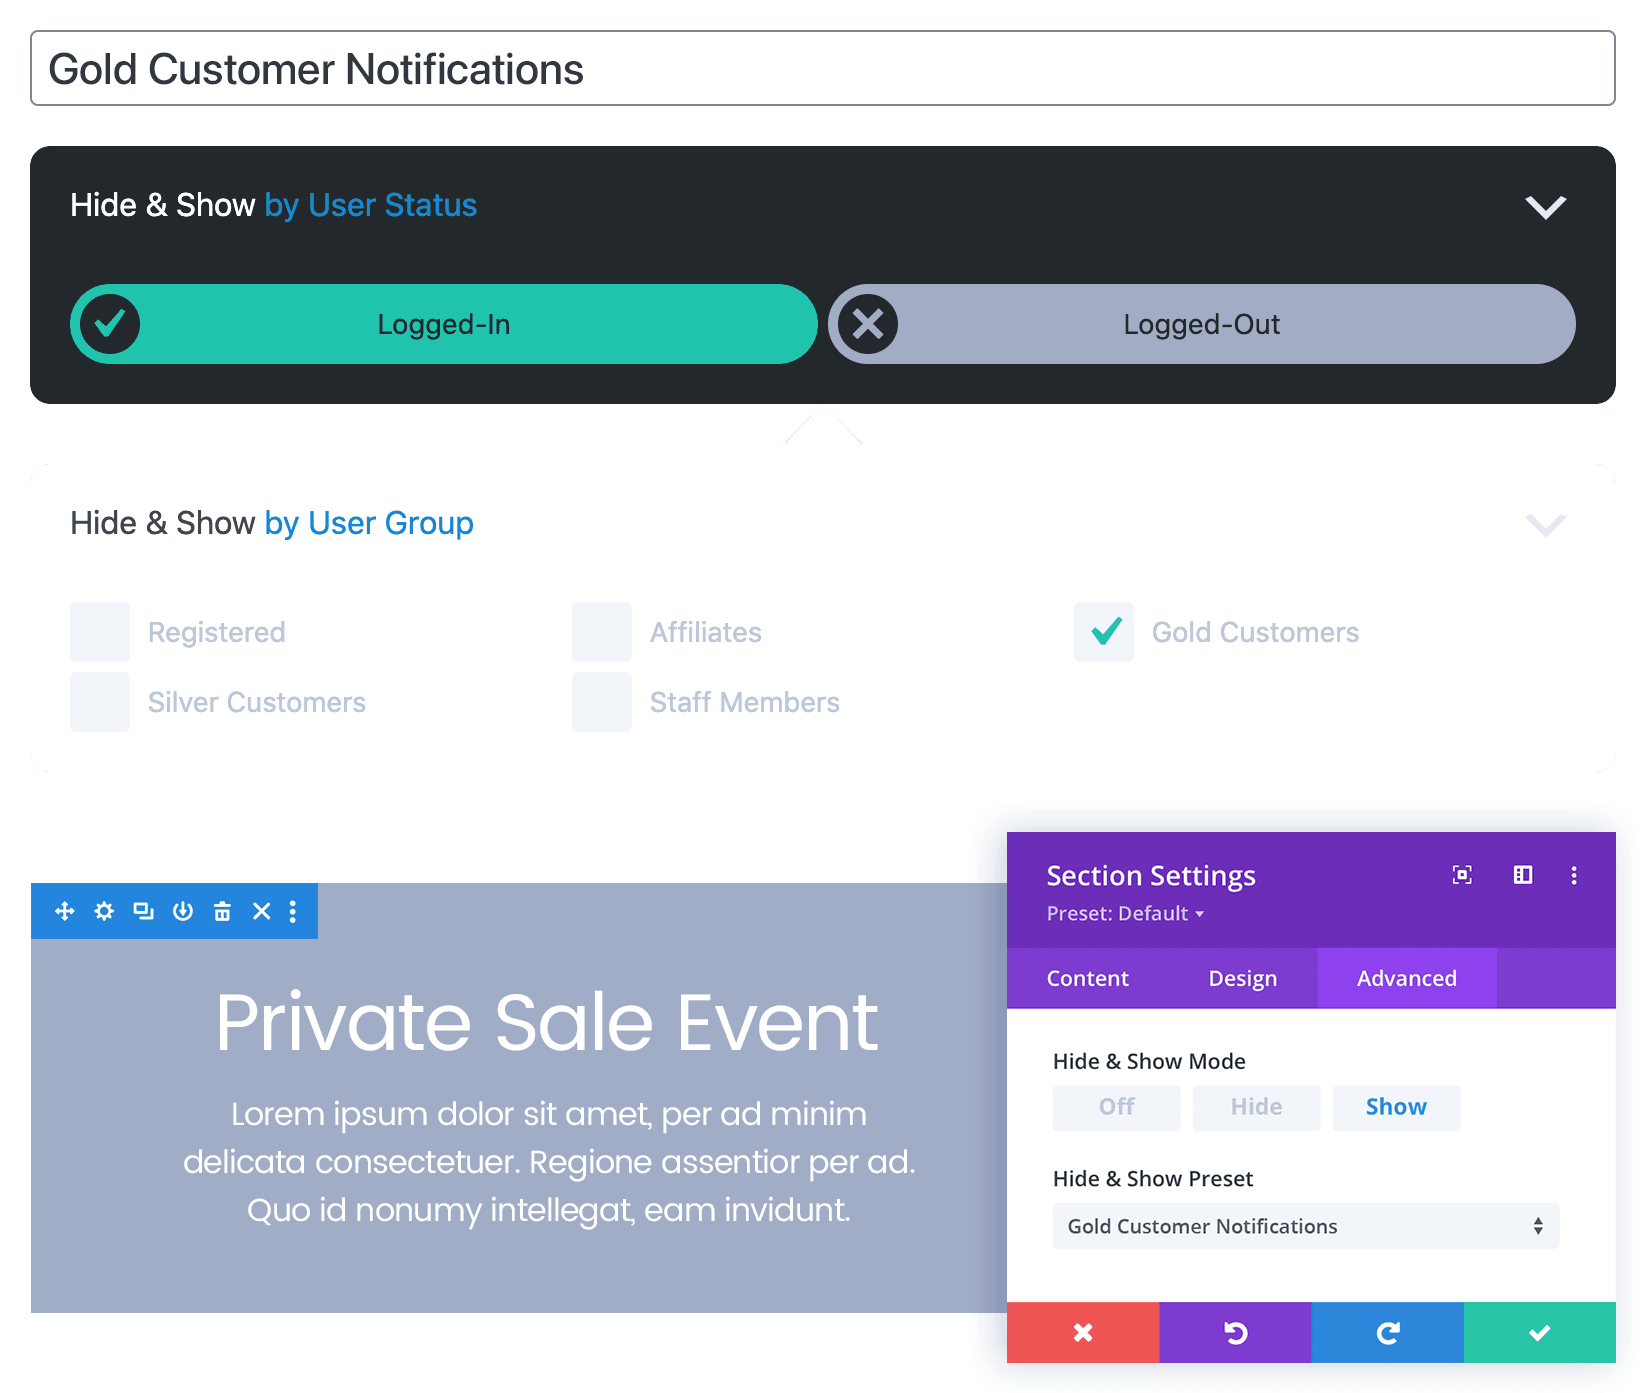 A Hide & Show PRO Targeted Content usage example